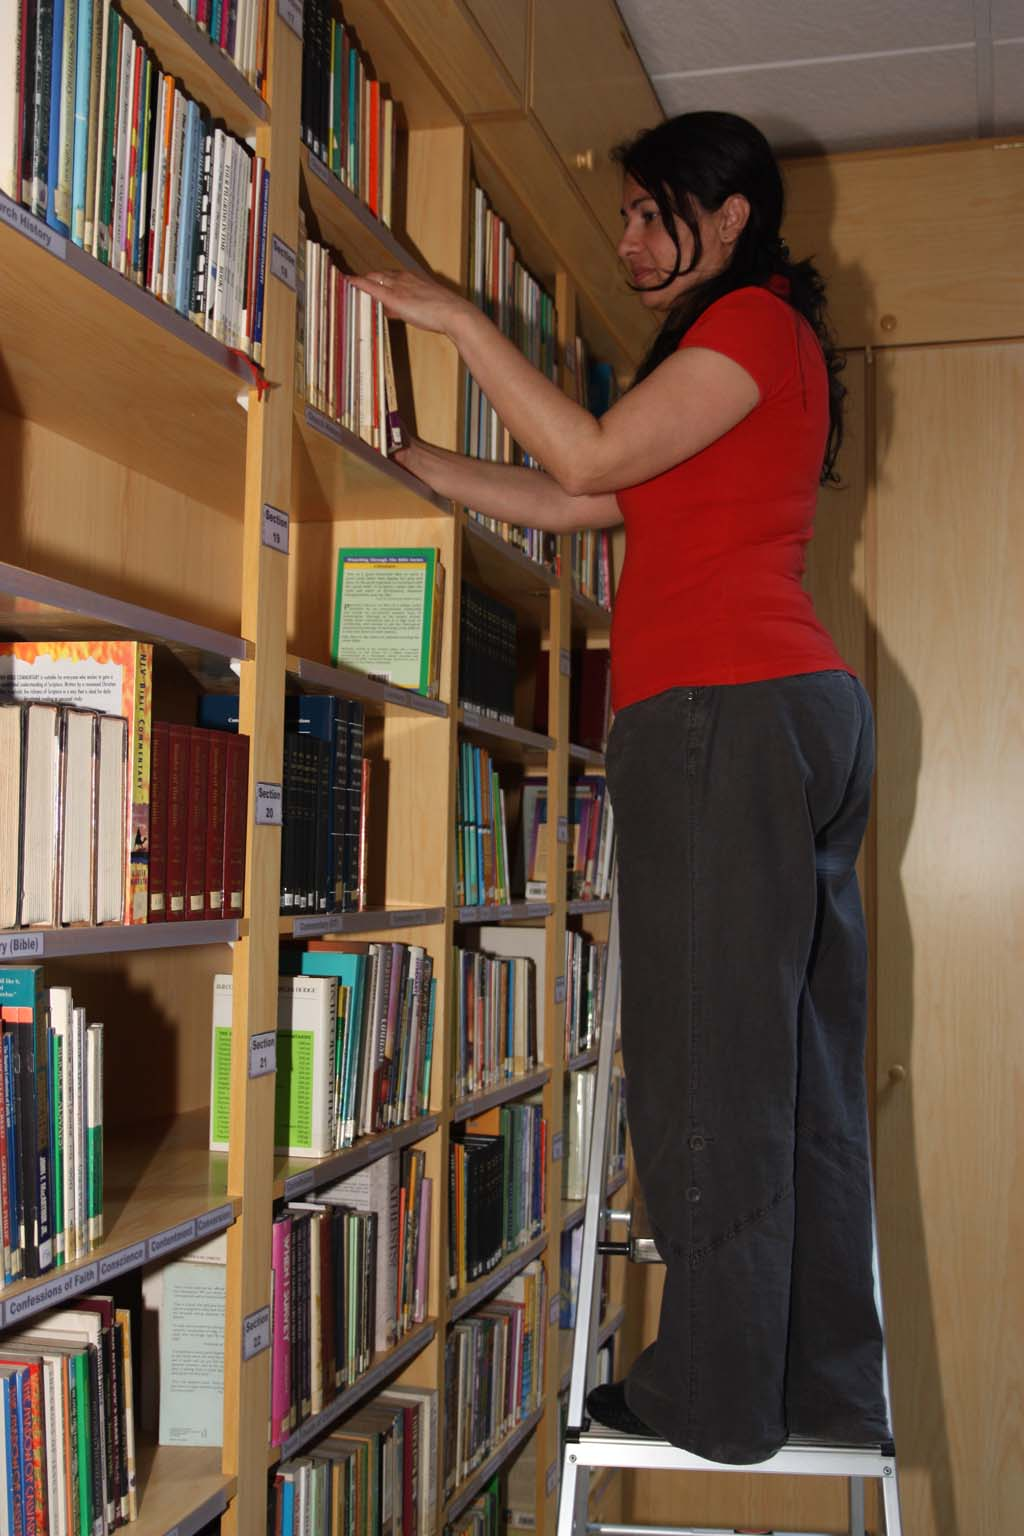 Organising the books in the library.